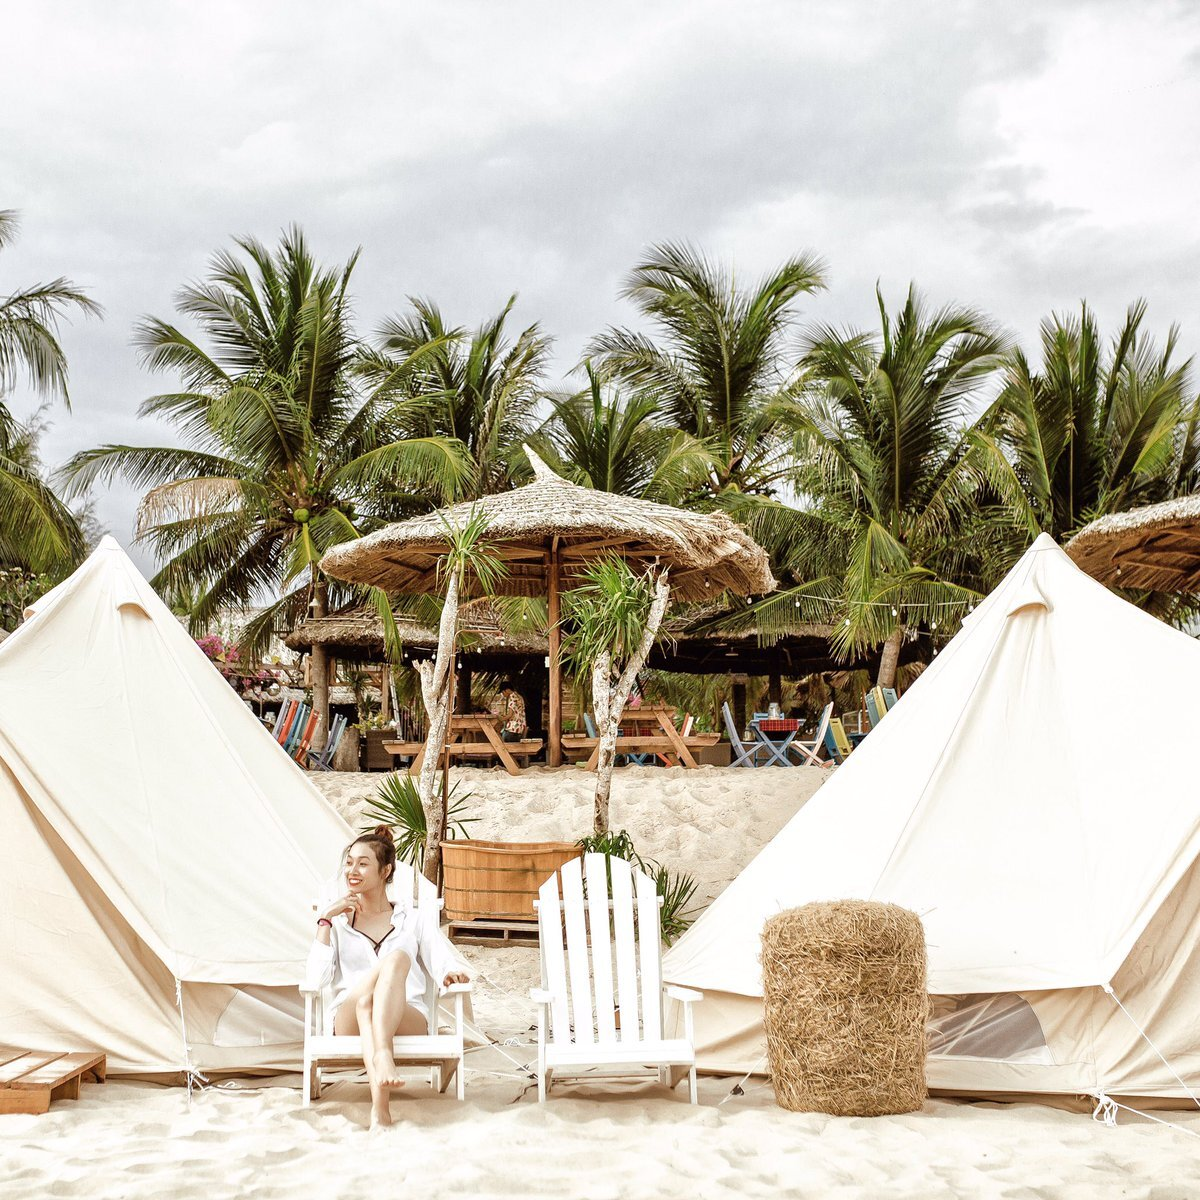 Five luxurious campsites in Vietnam for memorable summer holiday